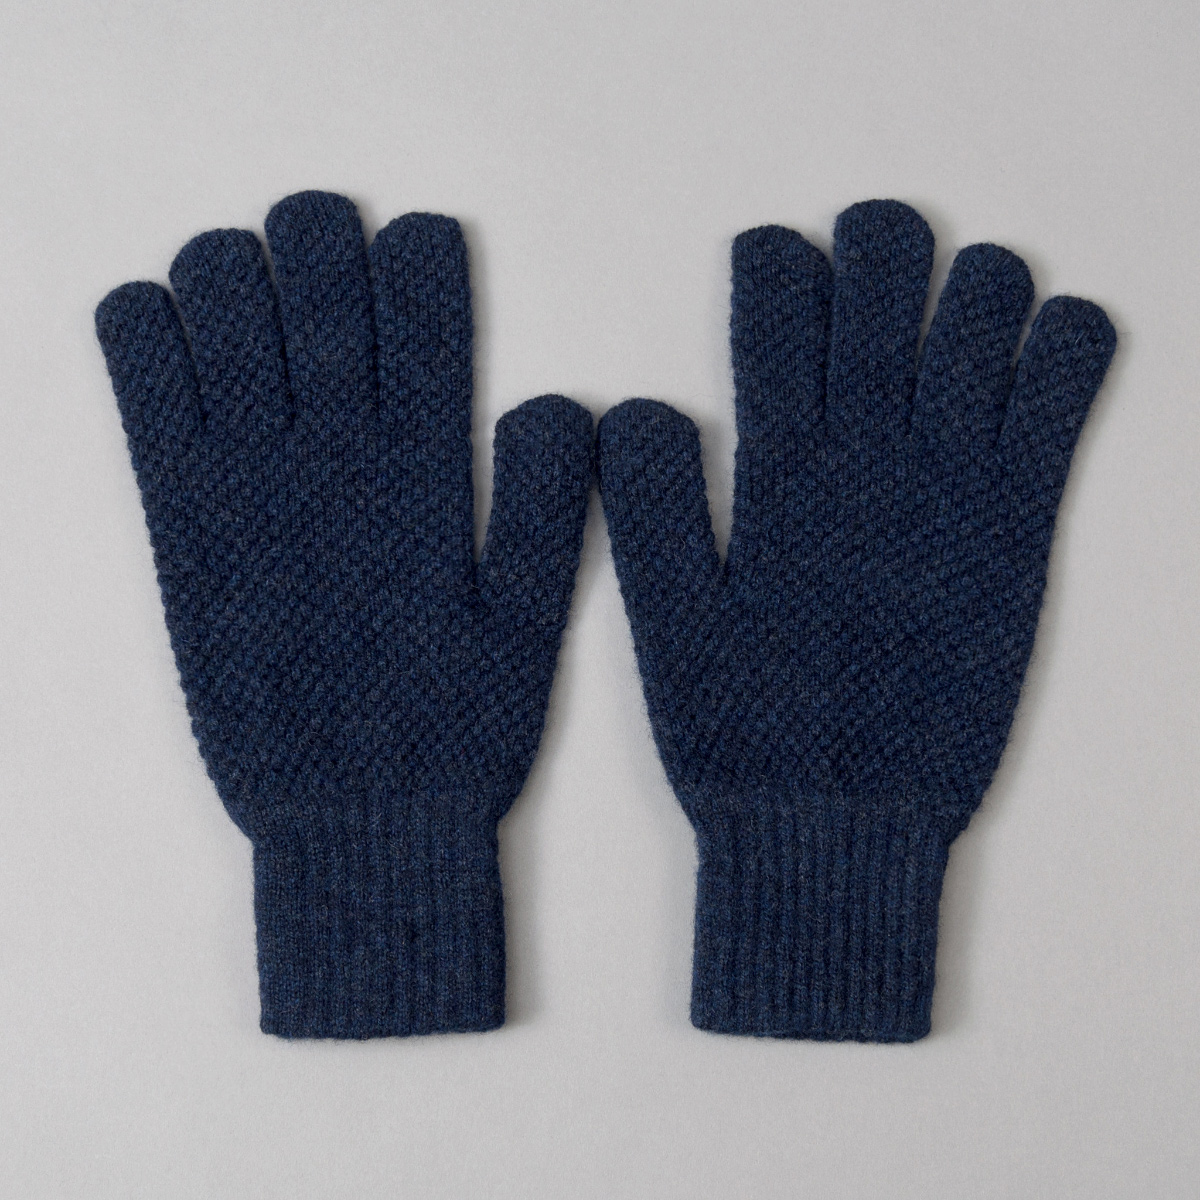 Howlin Herbie Gloves, Dark Blue